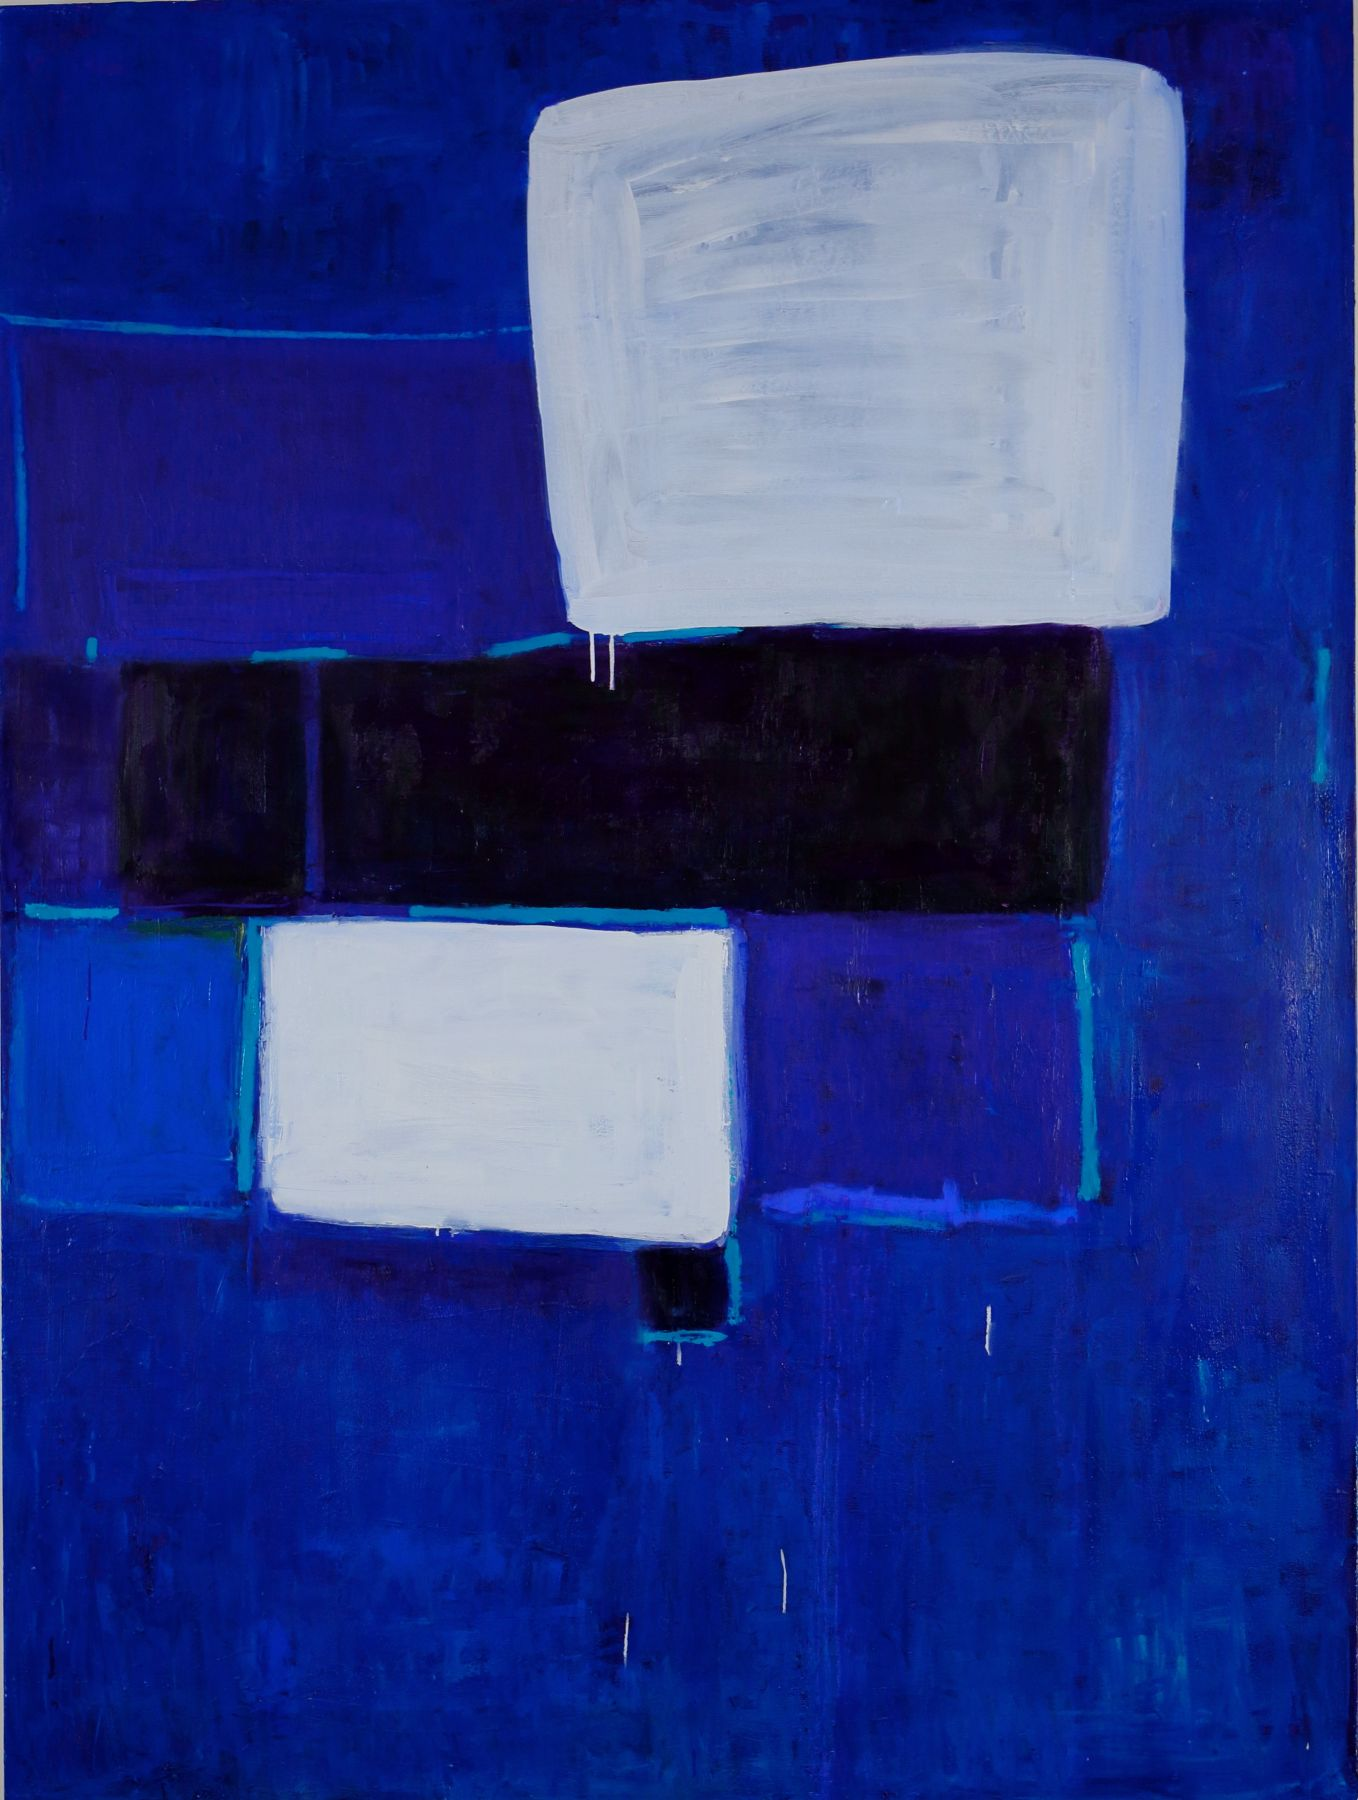 Katherine Parker, Shell Game, Oil on canvas, 80 x 60 inches, Abstract cobalt blue painting with black and white rectangles, Katherine Parker is known for her large vividly painted canvases which are characterized by layers of stumbled and abraded oil paint.